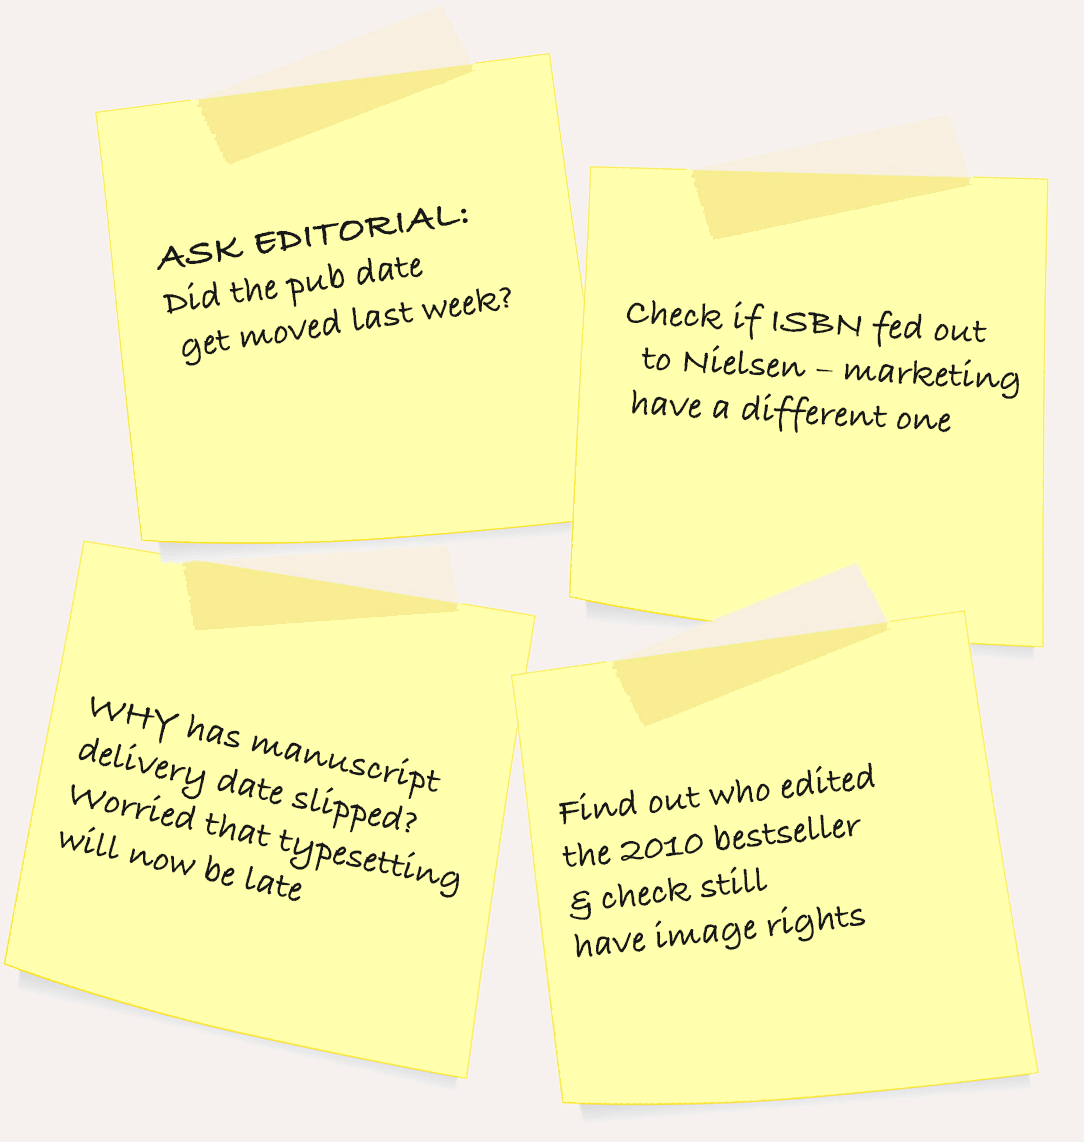 Some post it notes with worried thoughts from editorial assistants